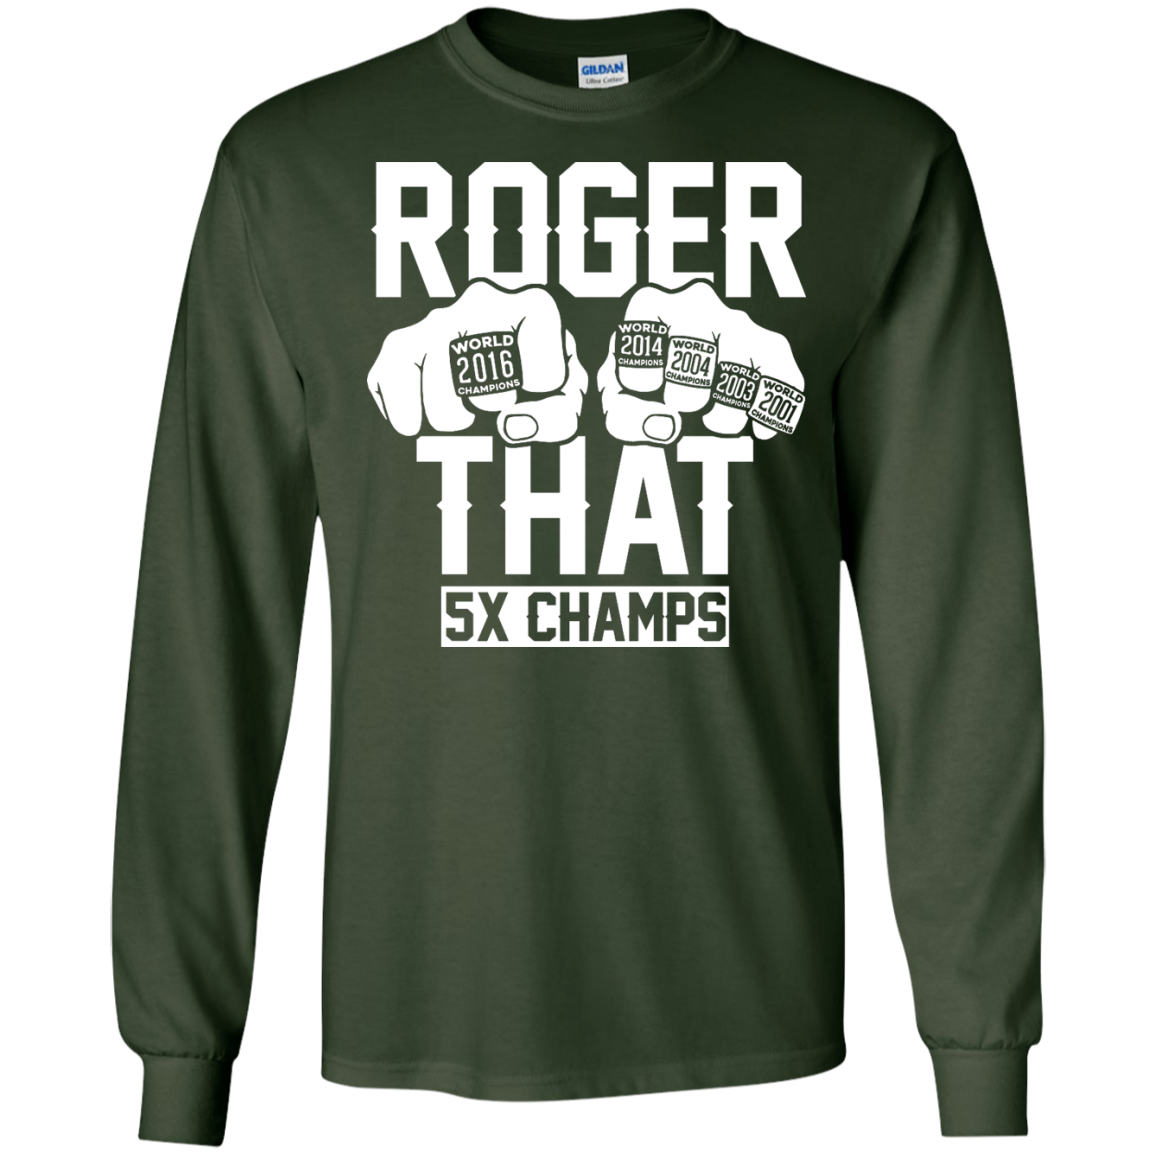 image 843px Roger That 5x Champs – Brady Trolls Goodell T Shirts